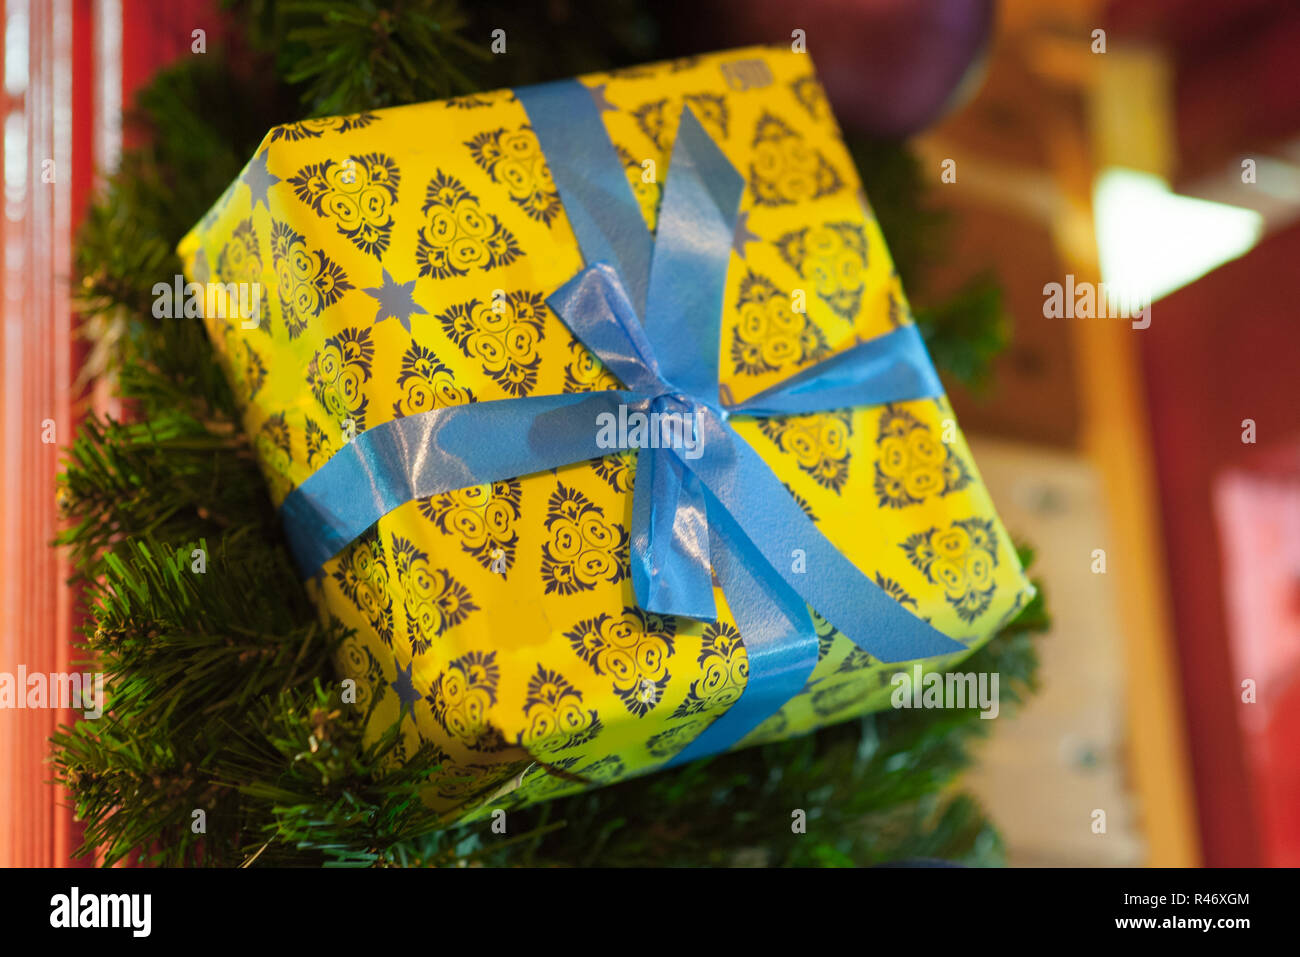 Box Christbaumkugeln.Christmas Interior Decoration In The Form Of A Yellow Gift Box Stock